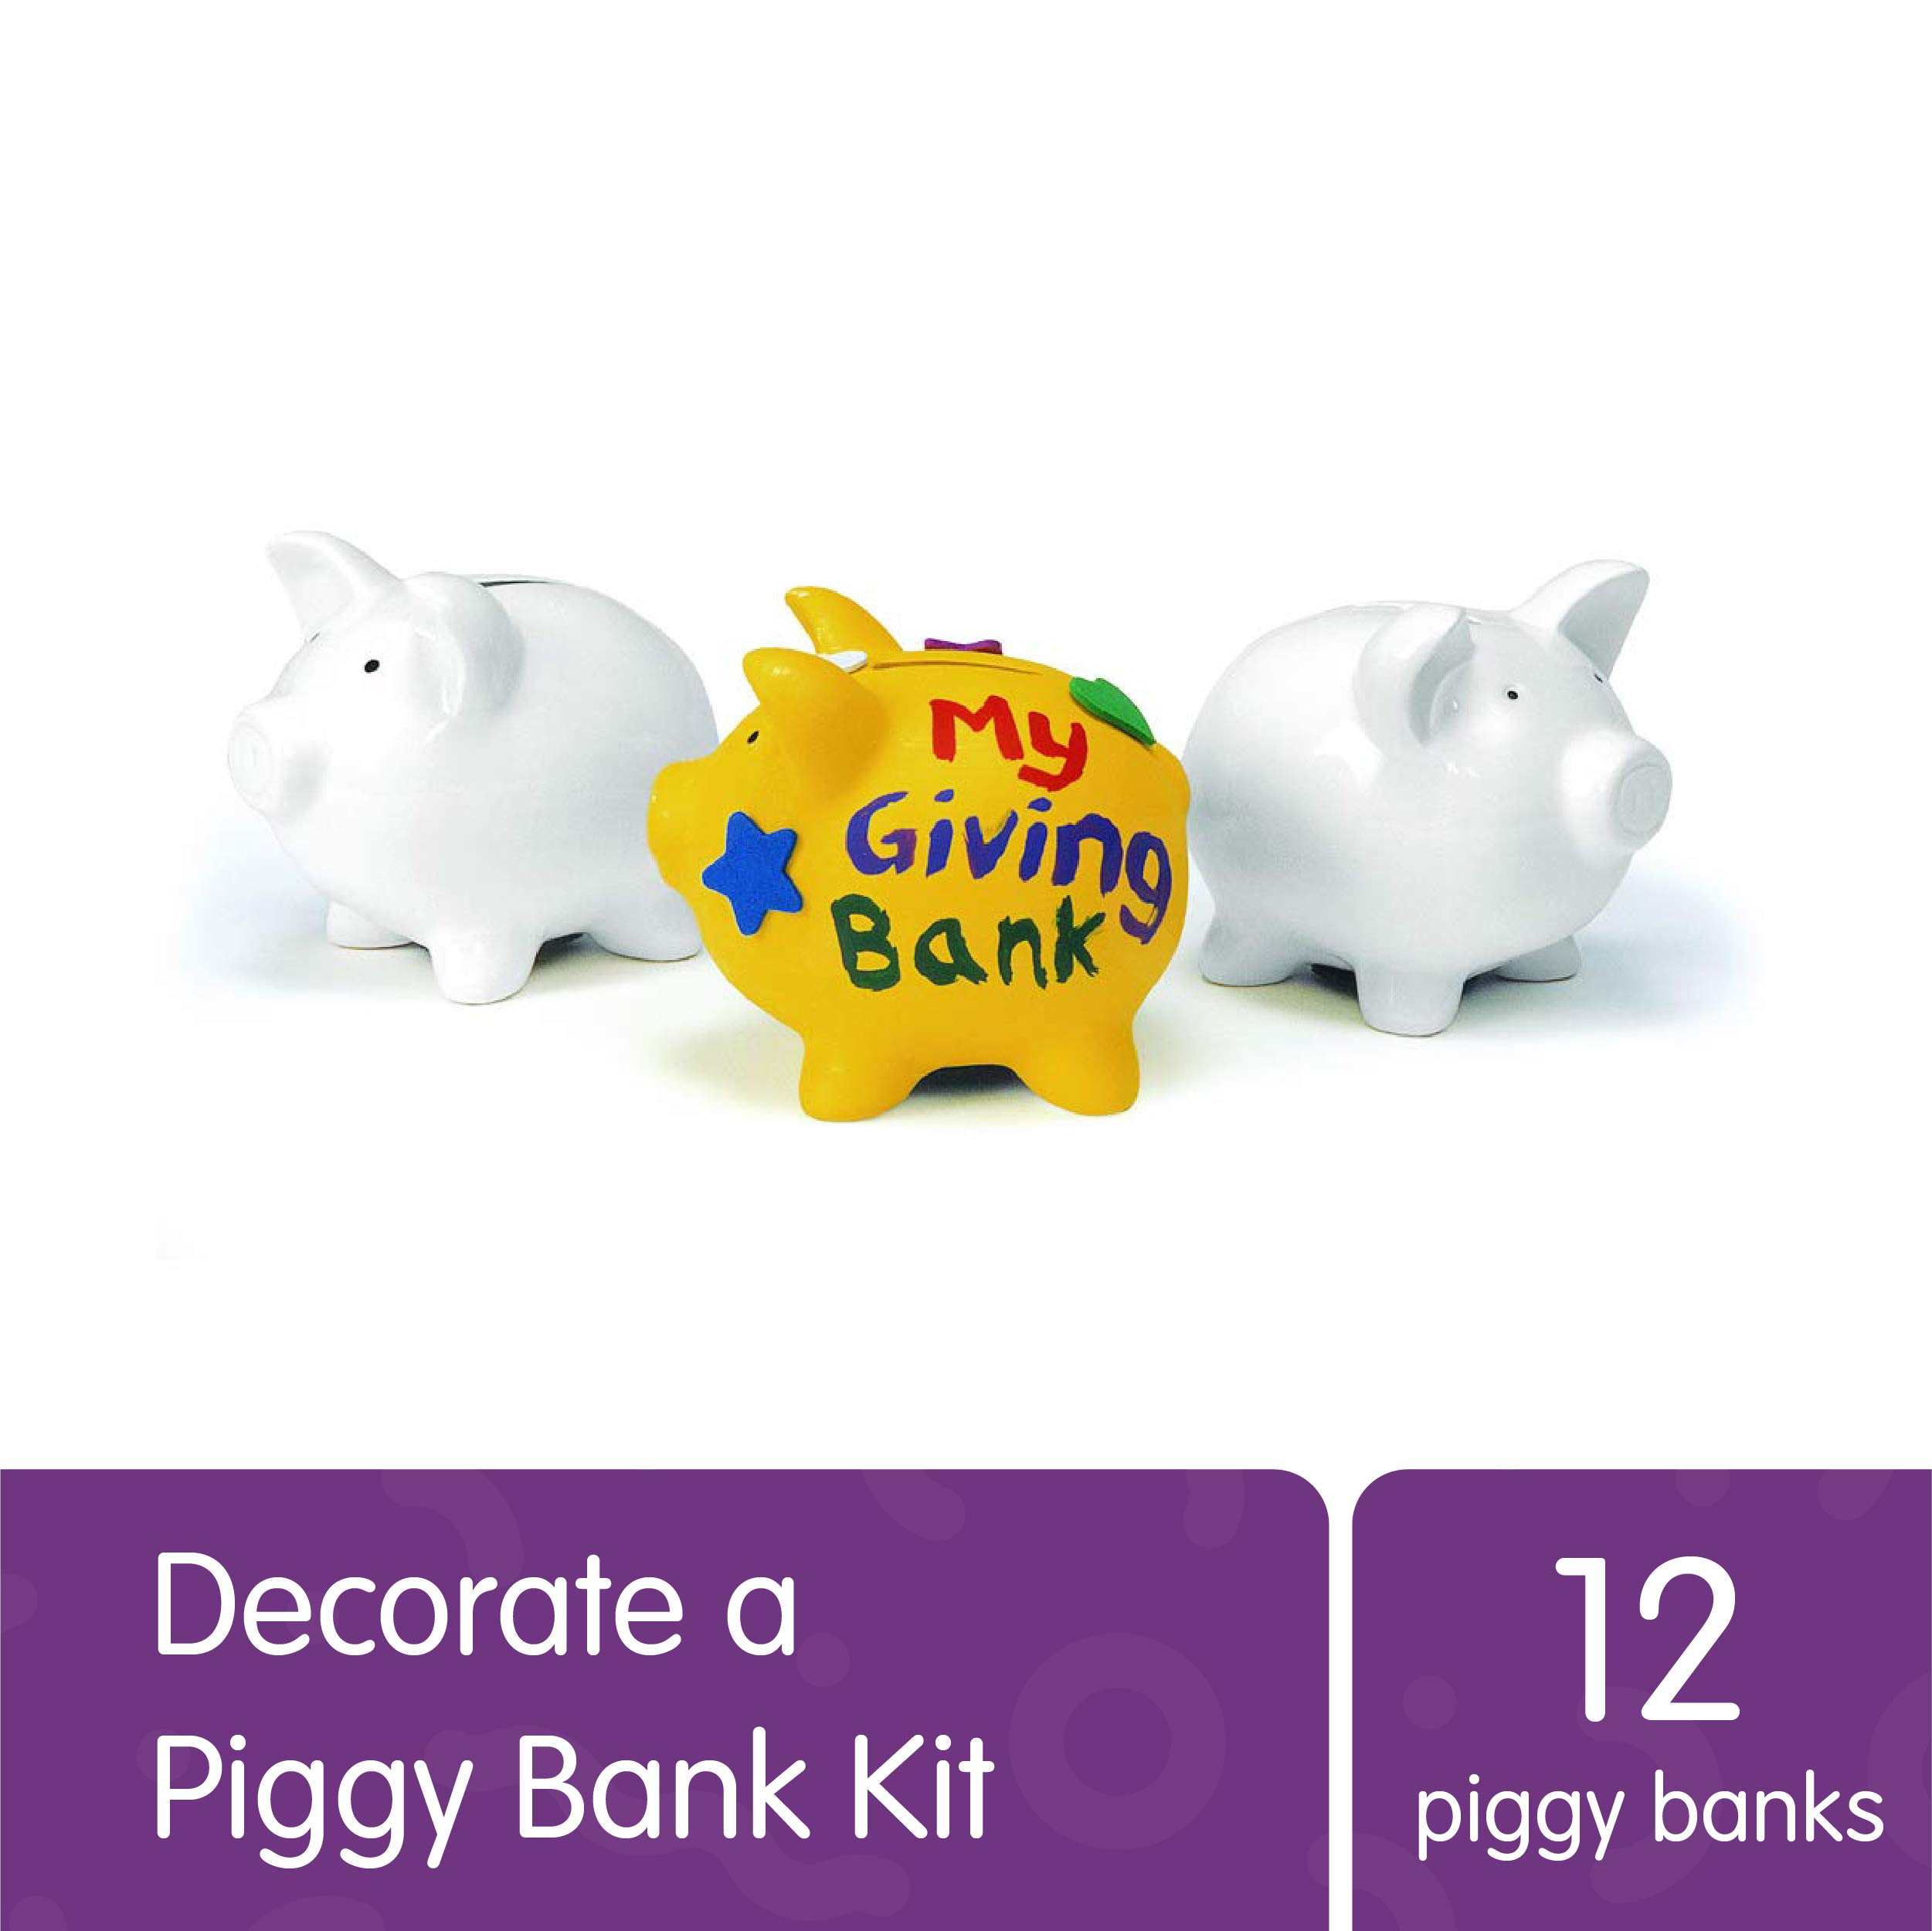 Colorations Decorate Your Own Piggy Bank, Ceramic, Set of 12, Coated Ceramic, DIY, Arts & Crafts, Gifts, Budgeting, Savings, for Kids, Educational, Craft Project by Colorations